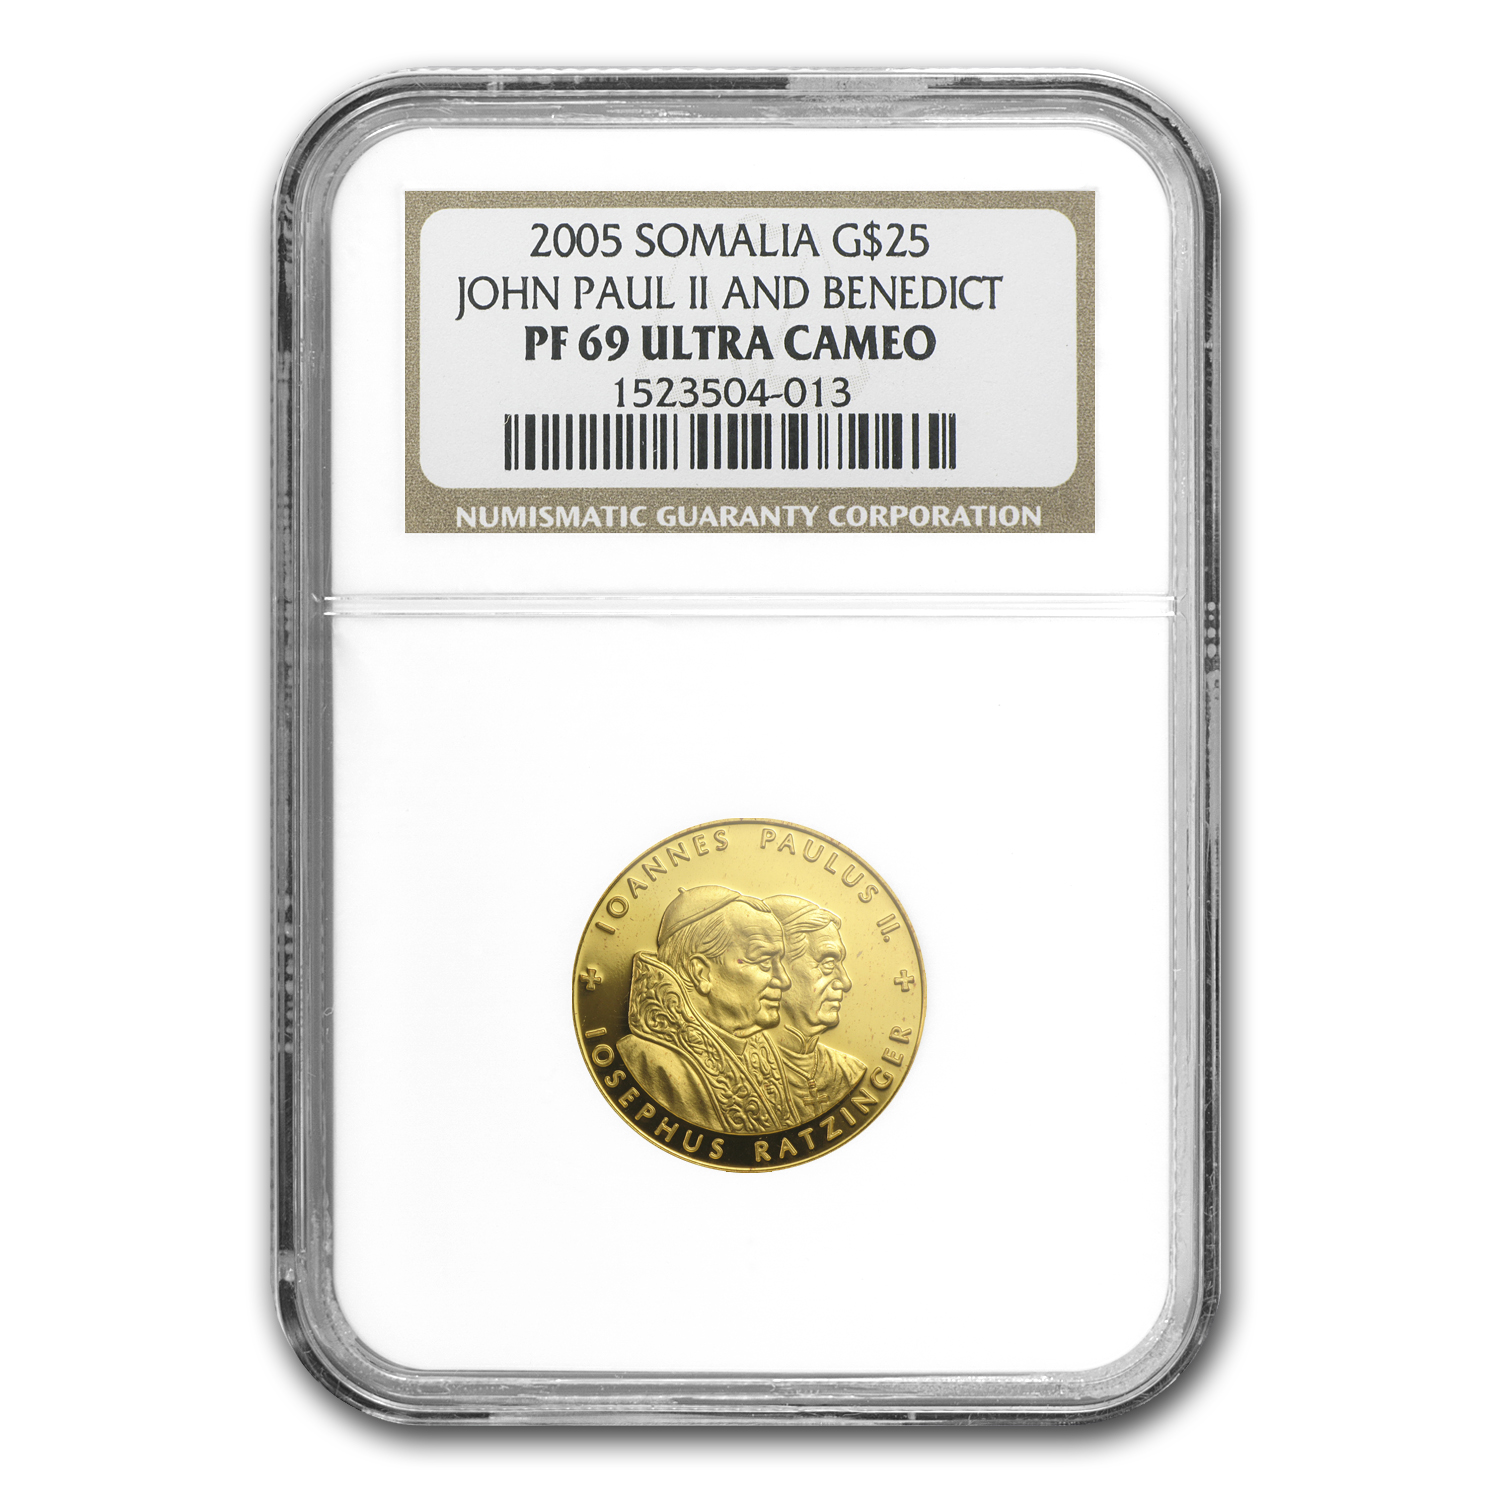 2005 Somalia 1/4 oz Proof Gold $25 Two Popes PF-69 NGC